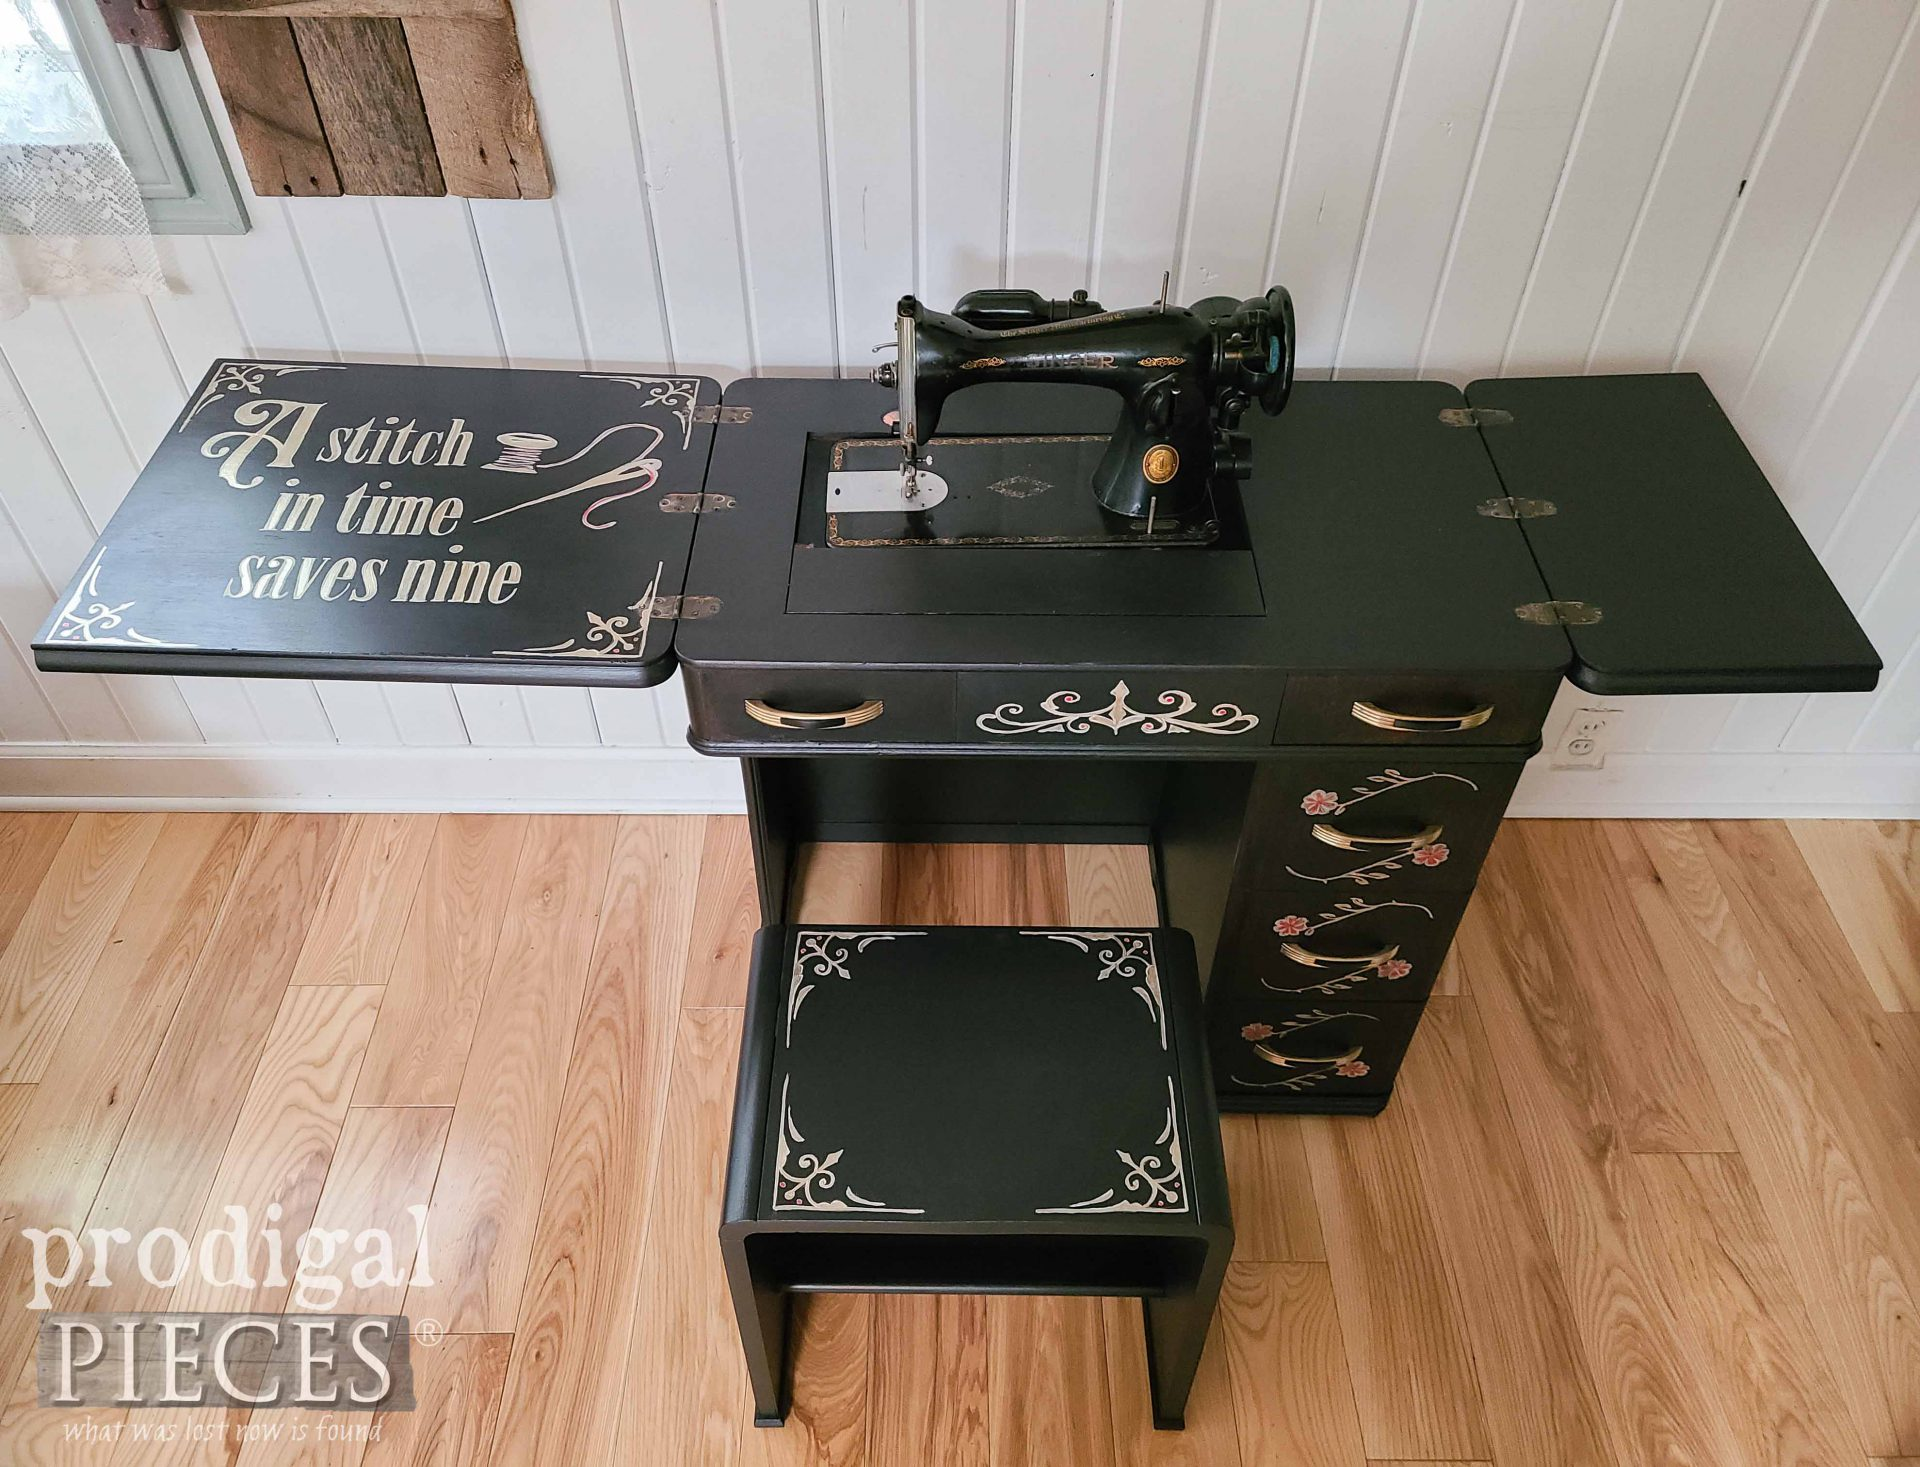 Hand-Painted Art Deco Sewing Desk with Design by Larissa of Prodigal Pieces | prodigalpieces.com #prodigalpieces #diy #home #homedecor #sewing